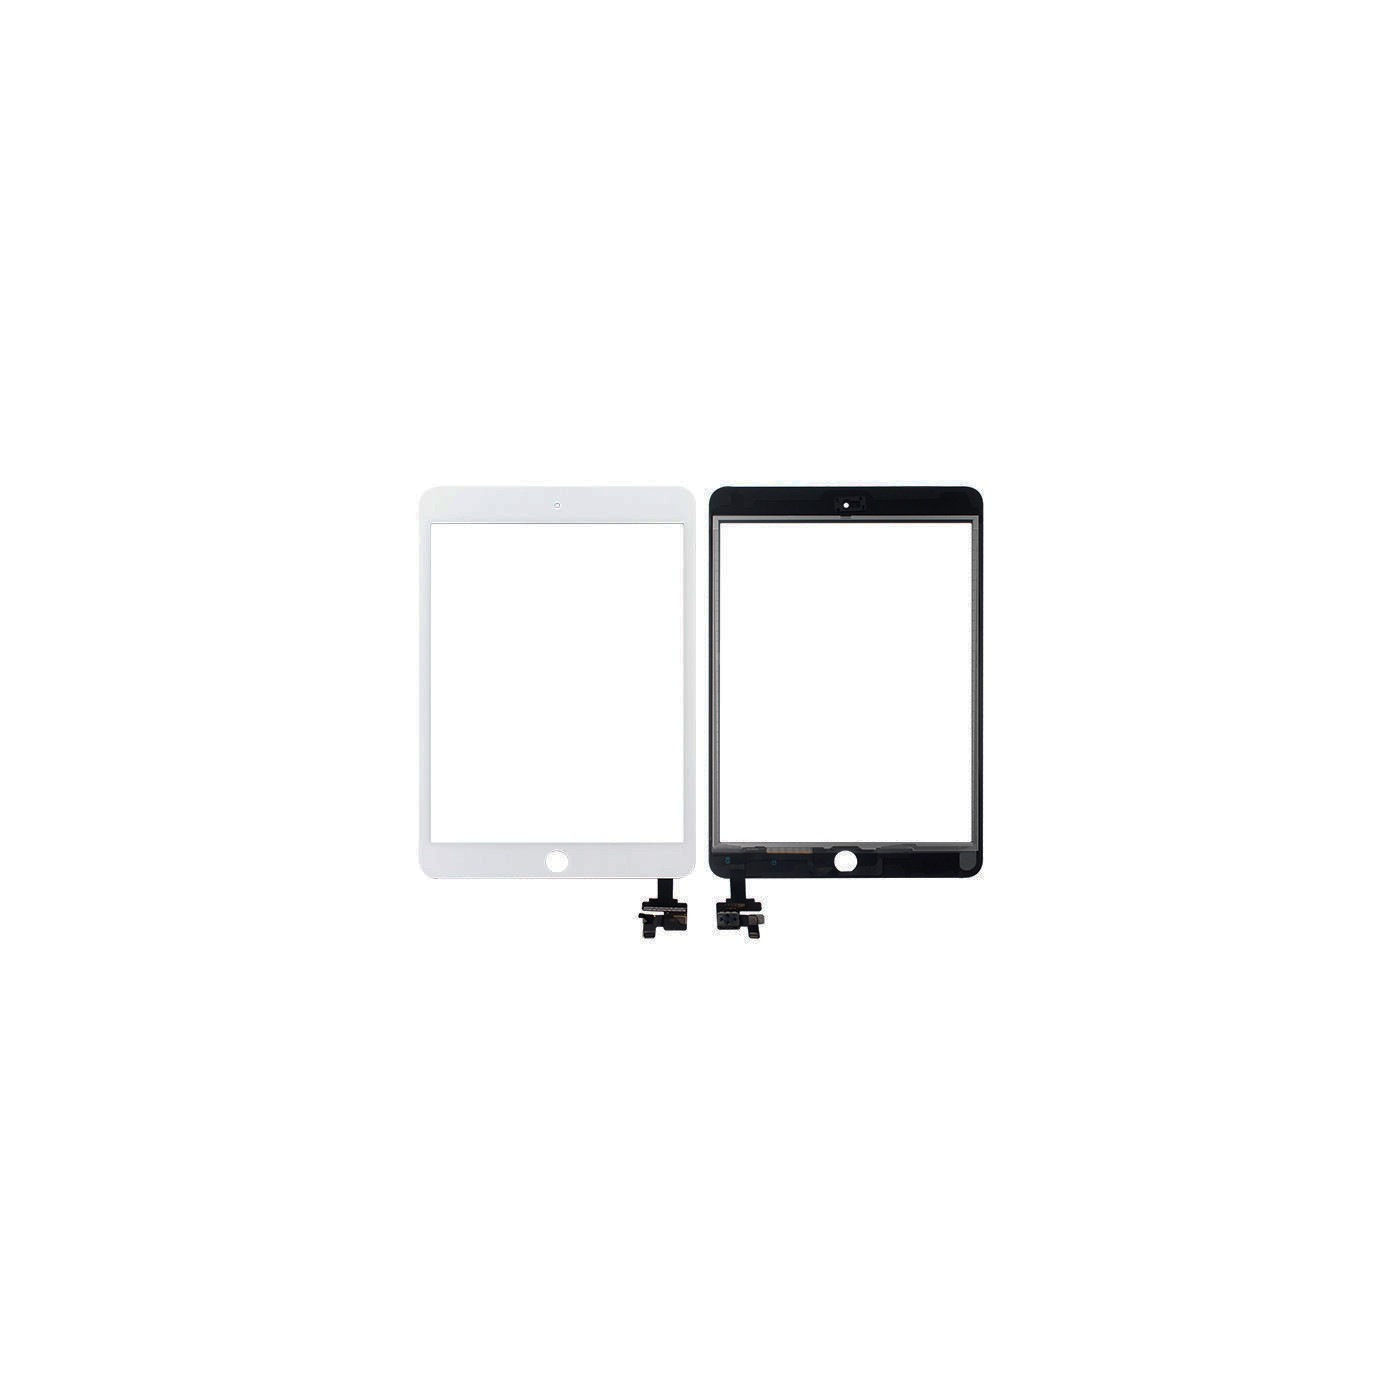 Touch screen per apple ipad mini 3 wifi 3g vetro schermo bianco + adesivo